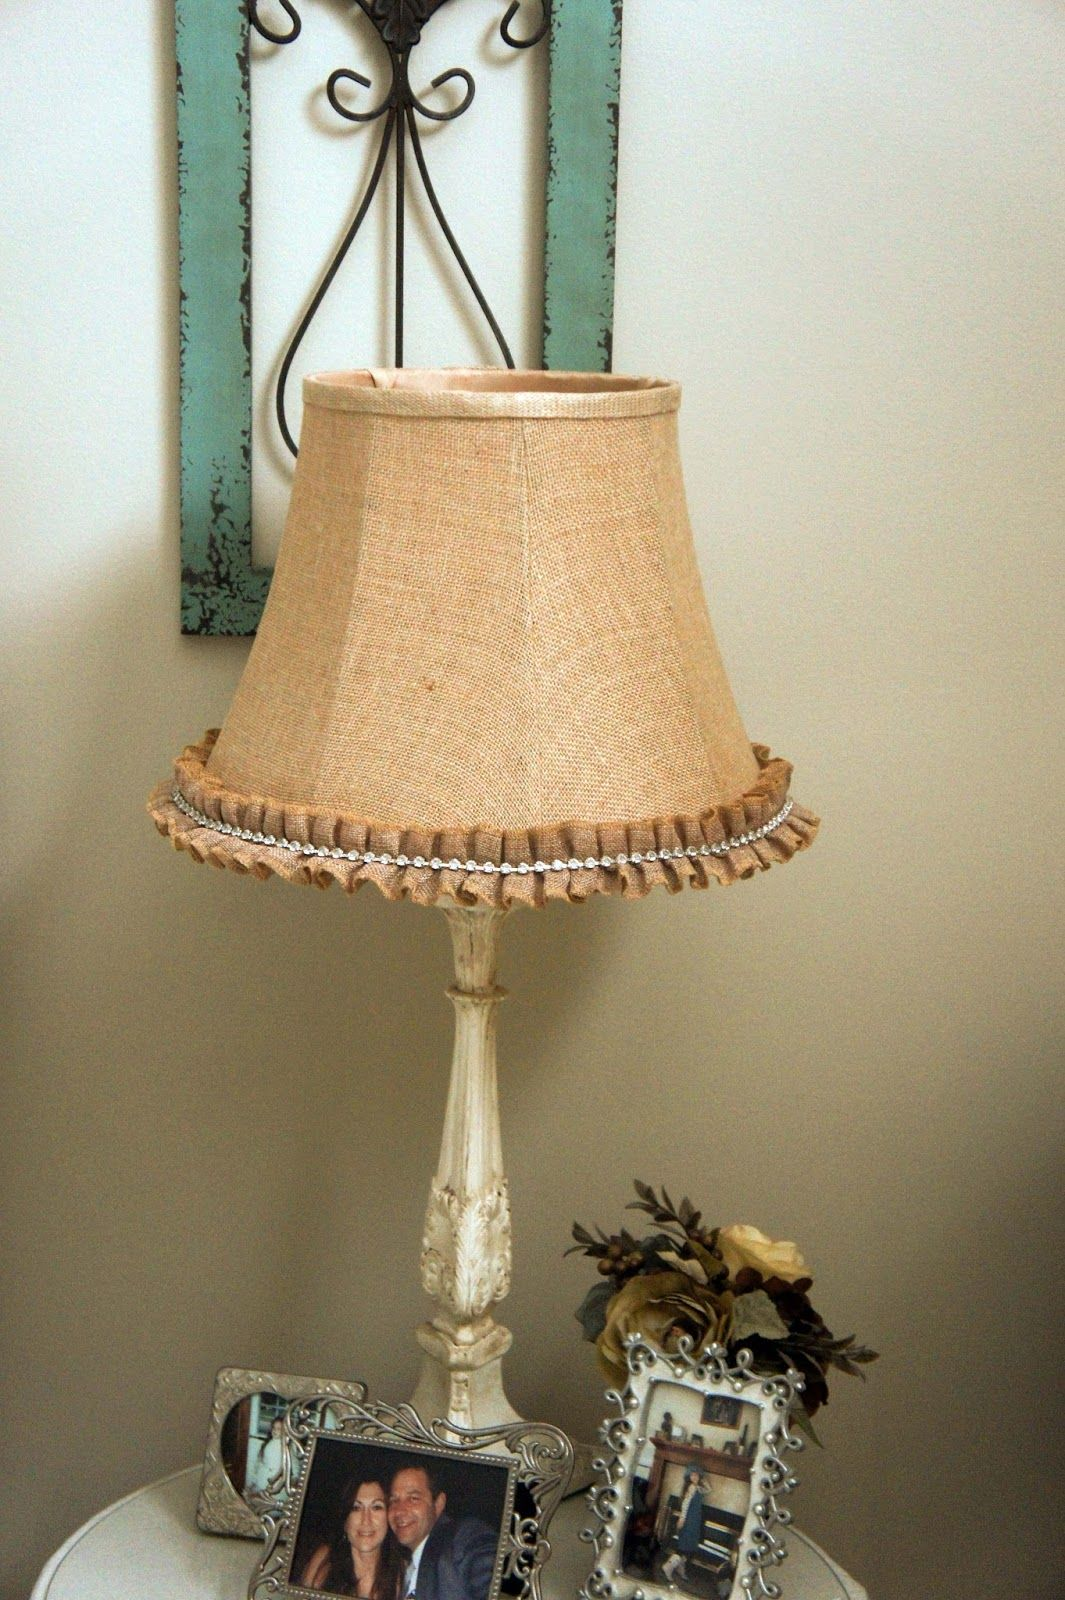 Hobby Lobby Lamp Shades Brilliant I Just Saw This Burlaprhinestone Trim At Hobby Lobby Today And Design Decoration